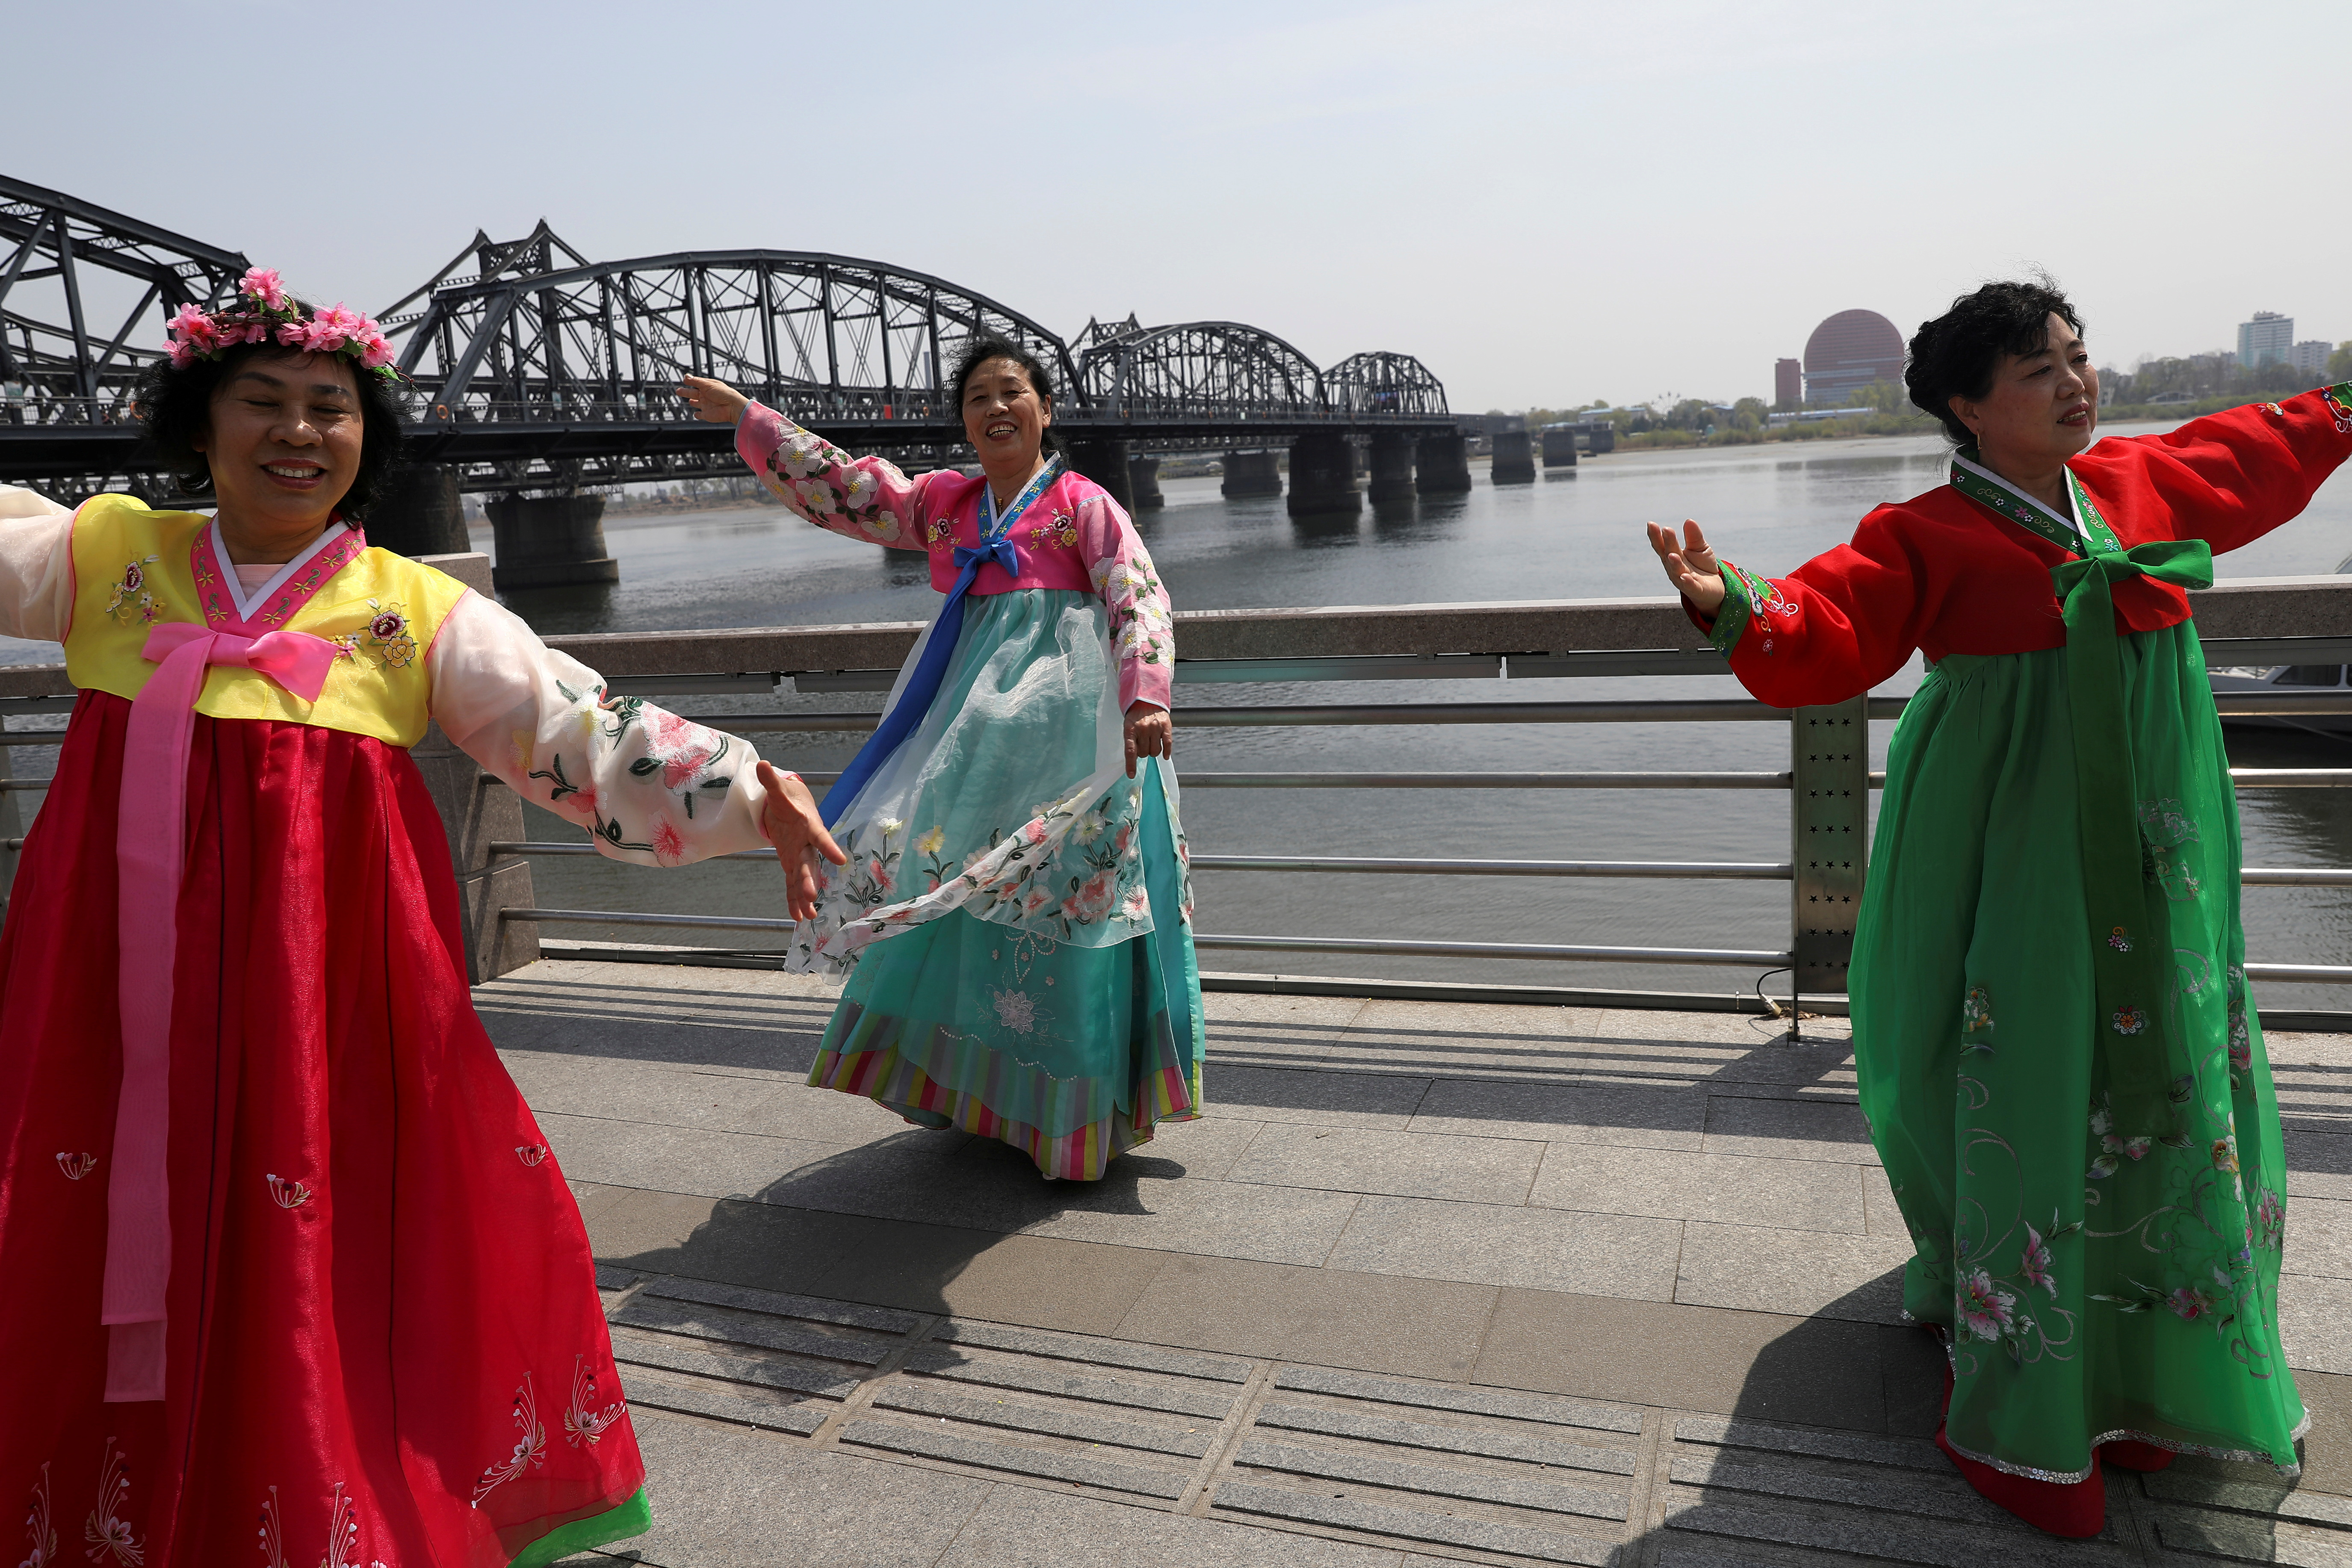 Tourists dressed in North Korean costumes dance as they pose for pictures near the Friendship Bridge and Broken Bridge over the Yalu River, which separates North Korea's Sinuiju from China, in Dandong, Liaoning province, China April 21, 2021. REUTERS/Tingshu Wang